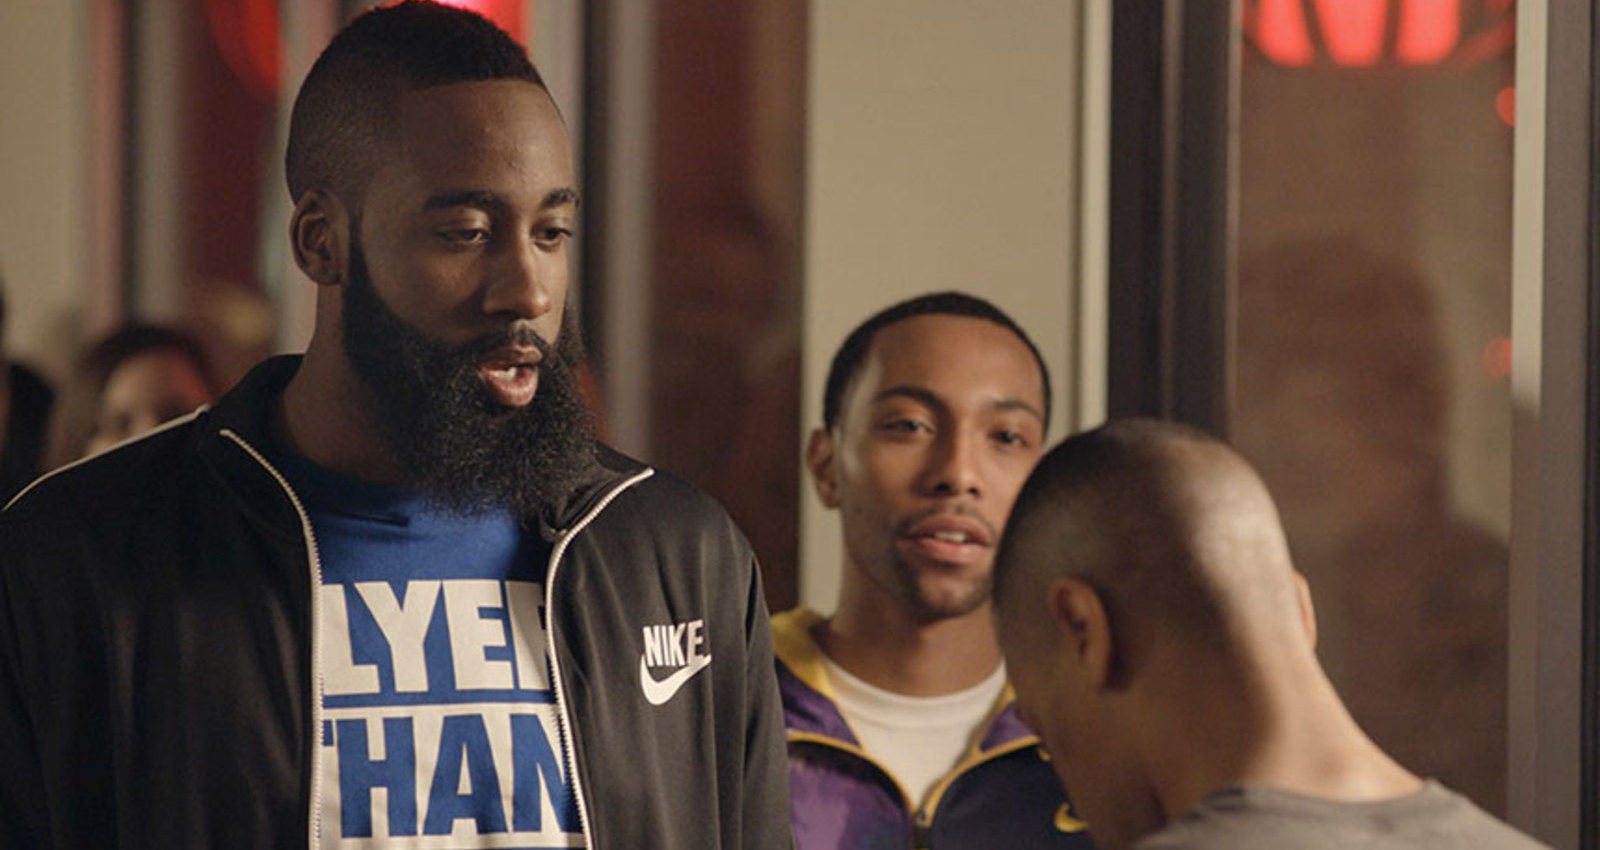 Harden's Entourage Integrated Campaign